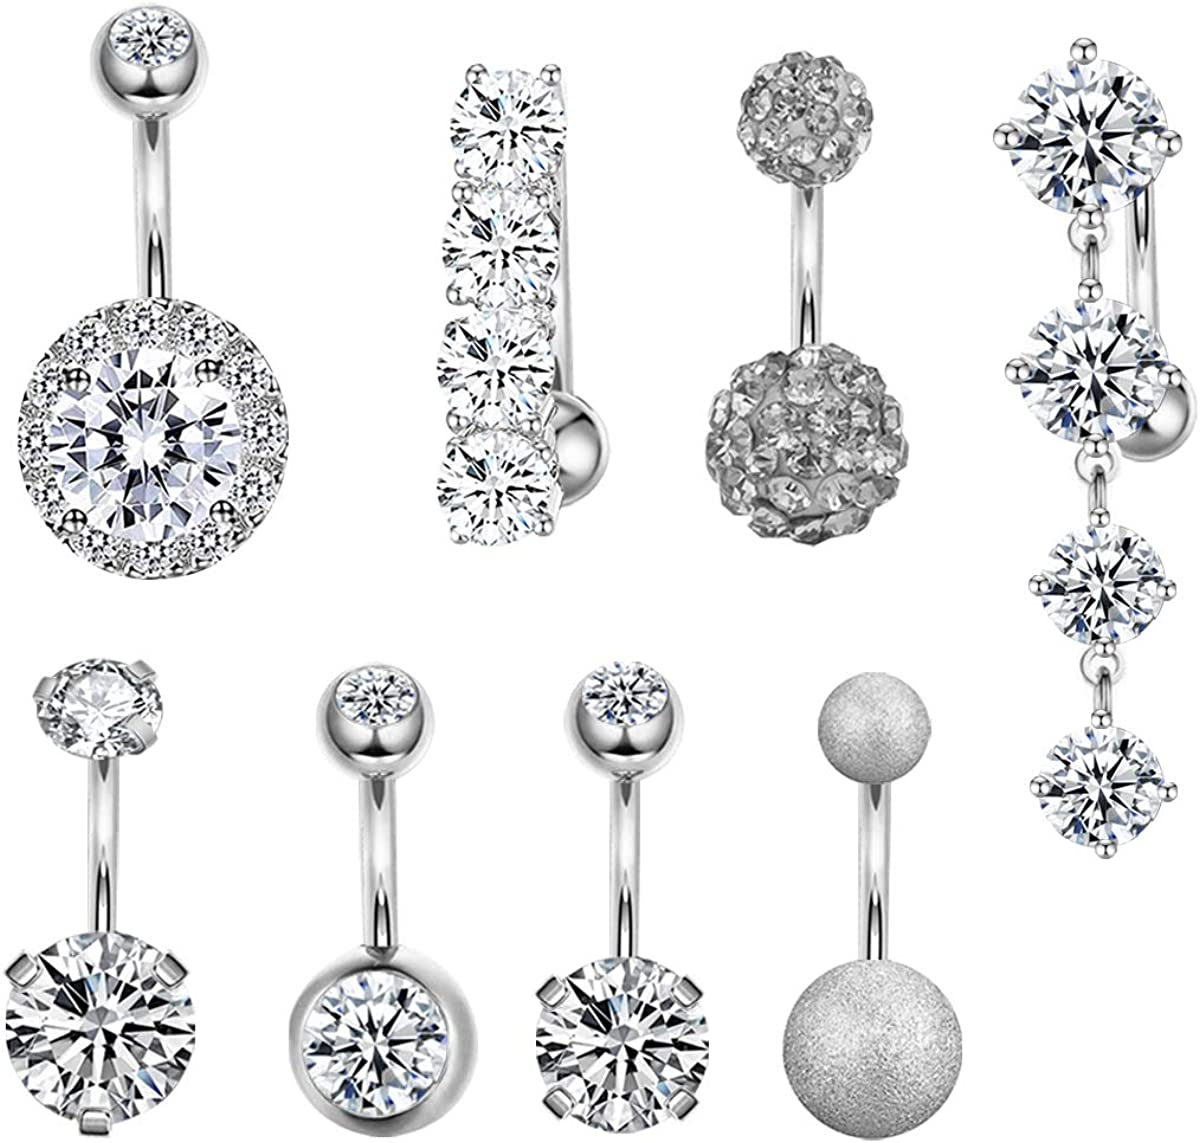 CZCCZC 14G Stainless Steel Belly Button Rings for Women Girls Mixed Navel Rings Body Piercing Jewelry